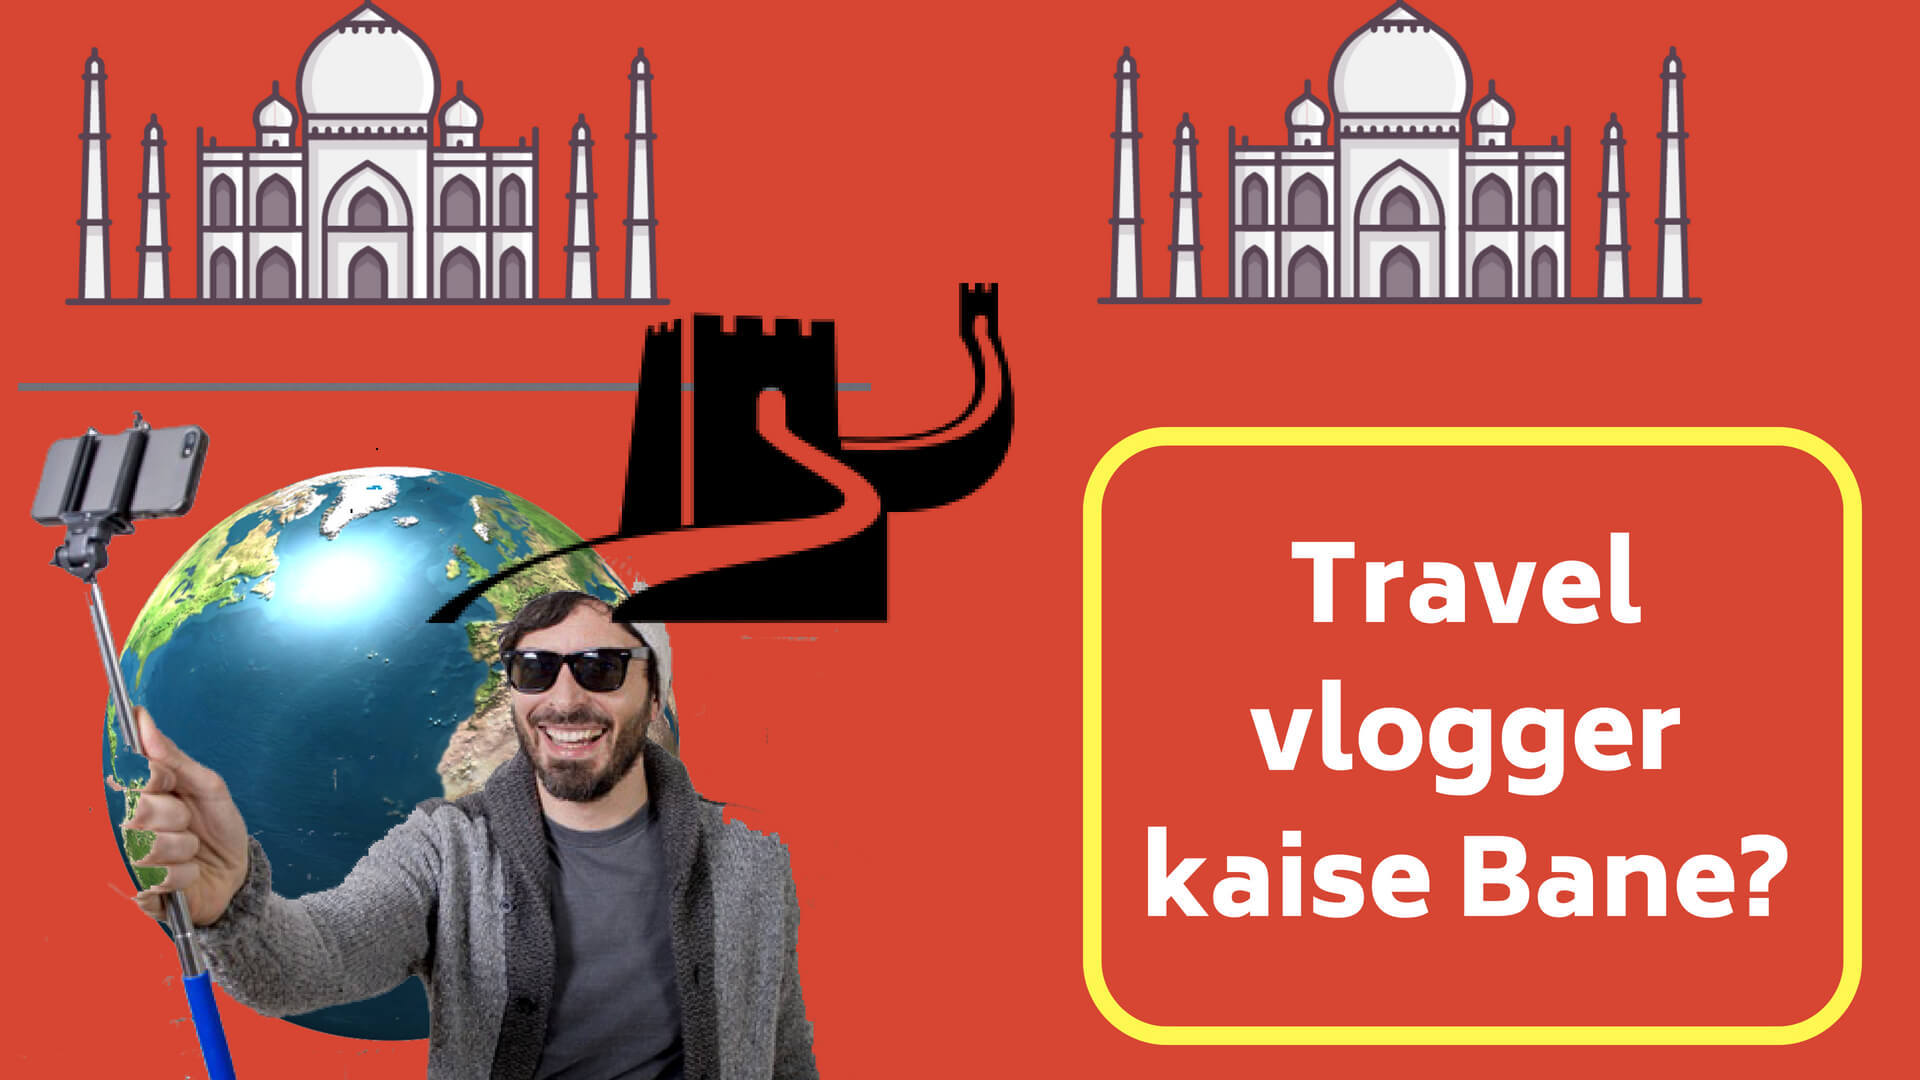 Travel Vlogger Kaise Bane?